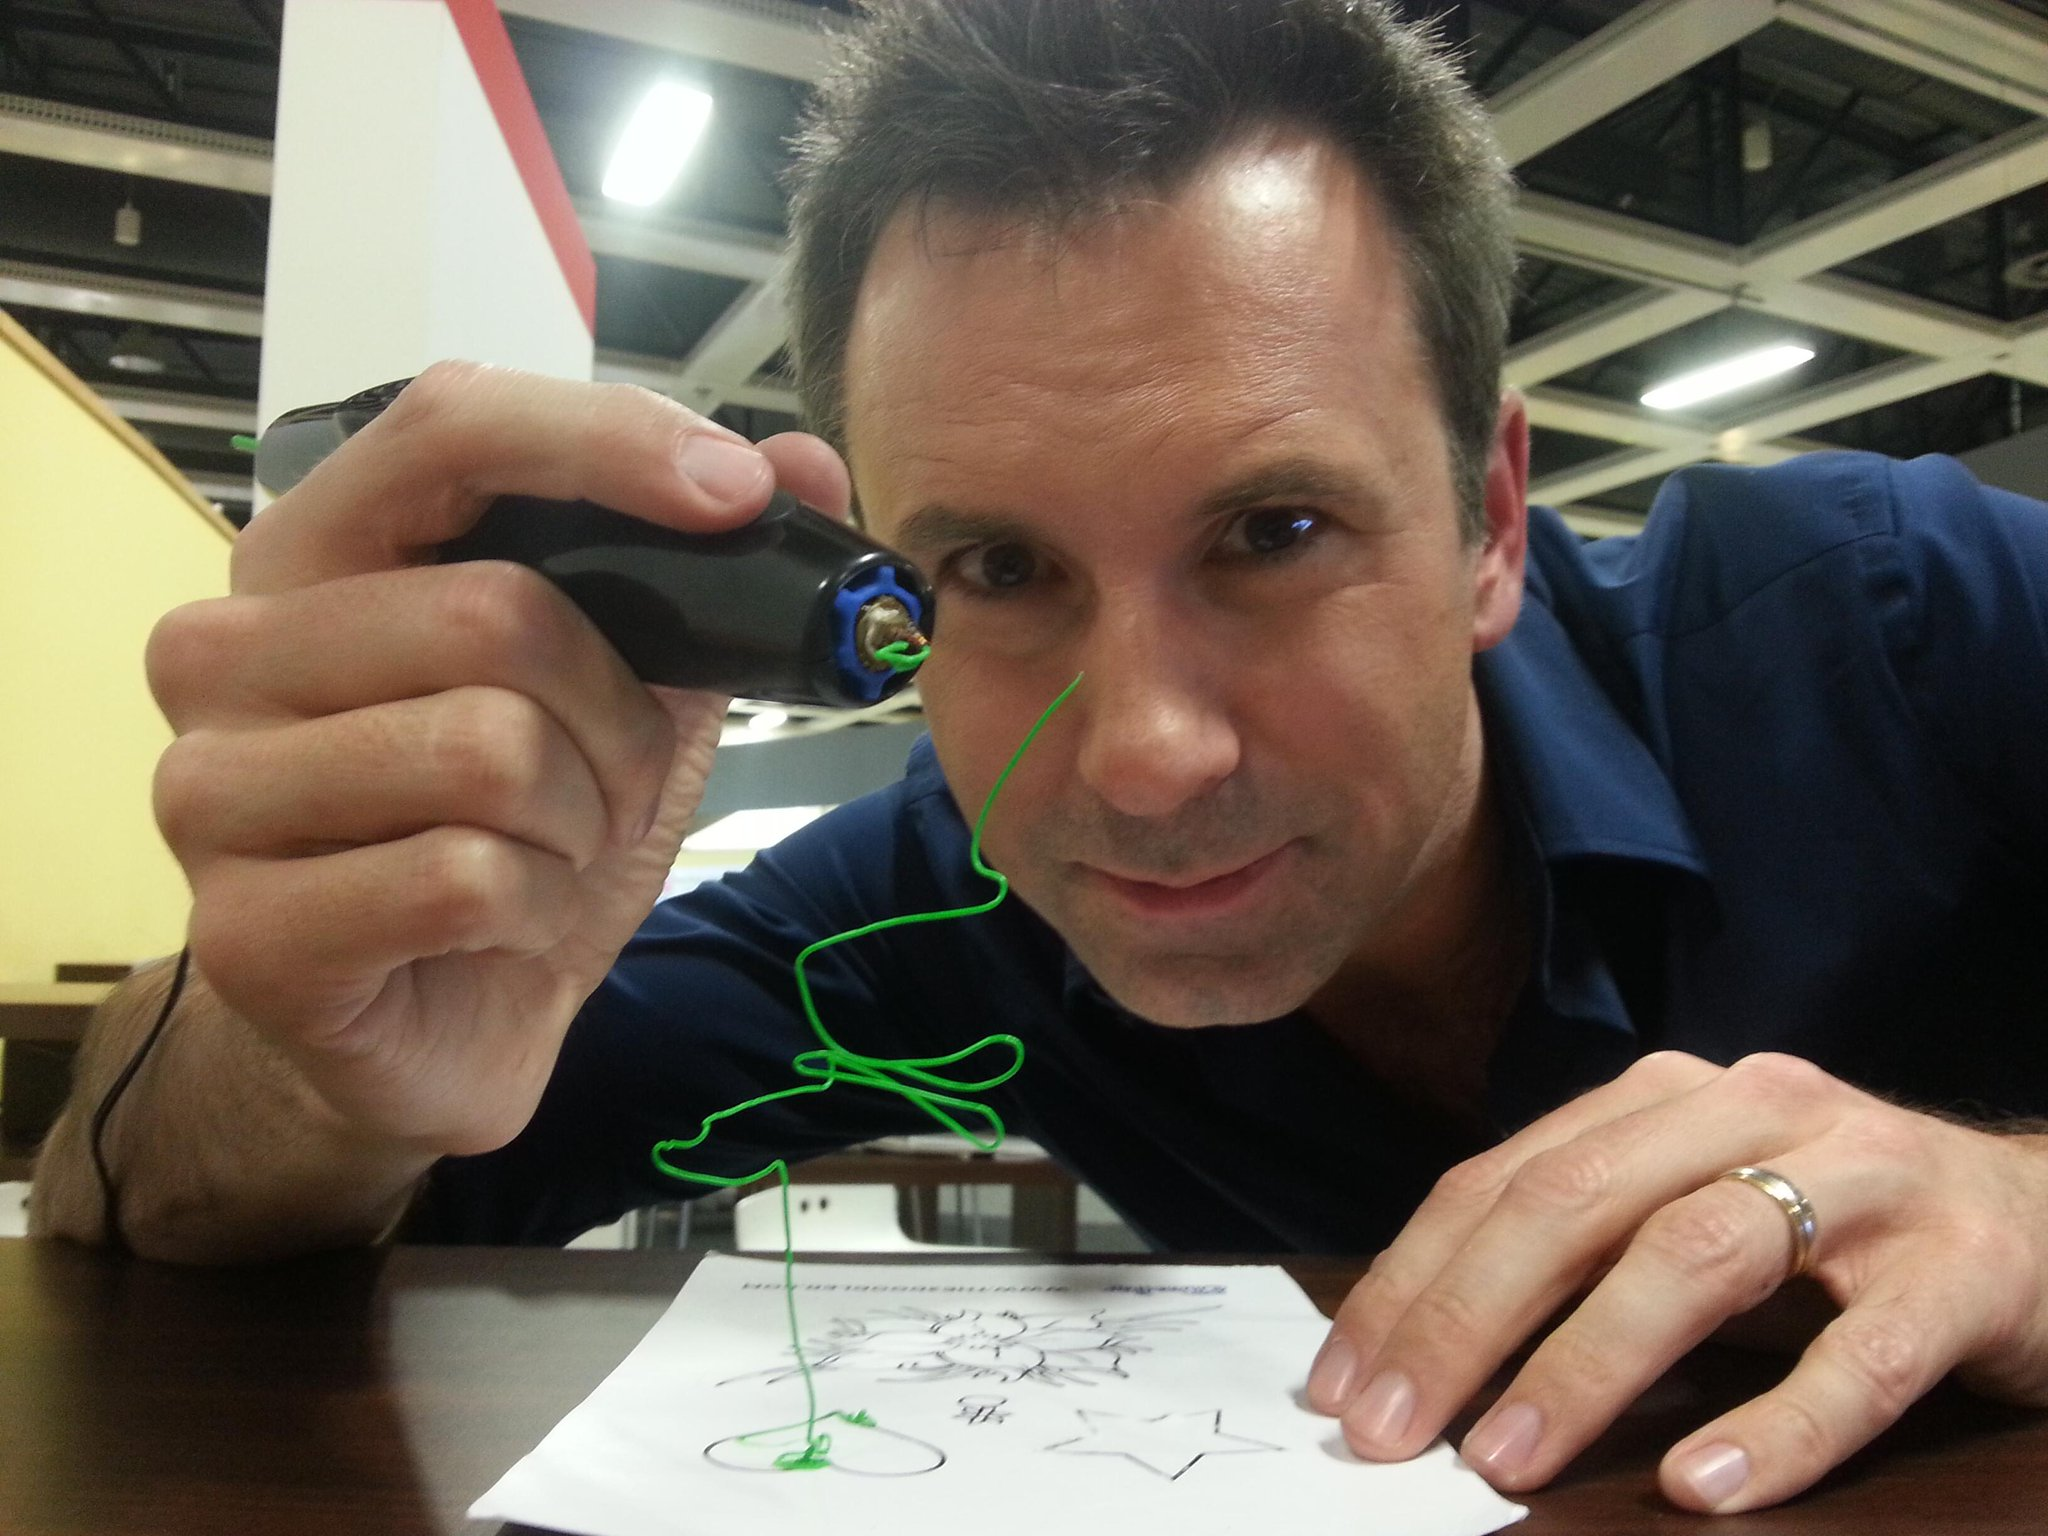 Move over 3d printers. Drawing with the 3d pen at #IFA13. Spen http://t.co/BKqYBCbmEN